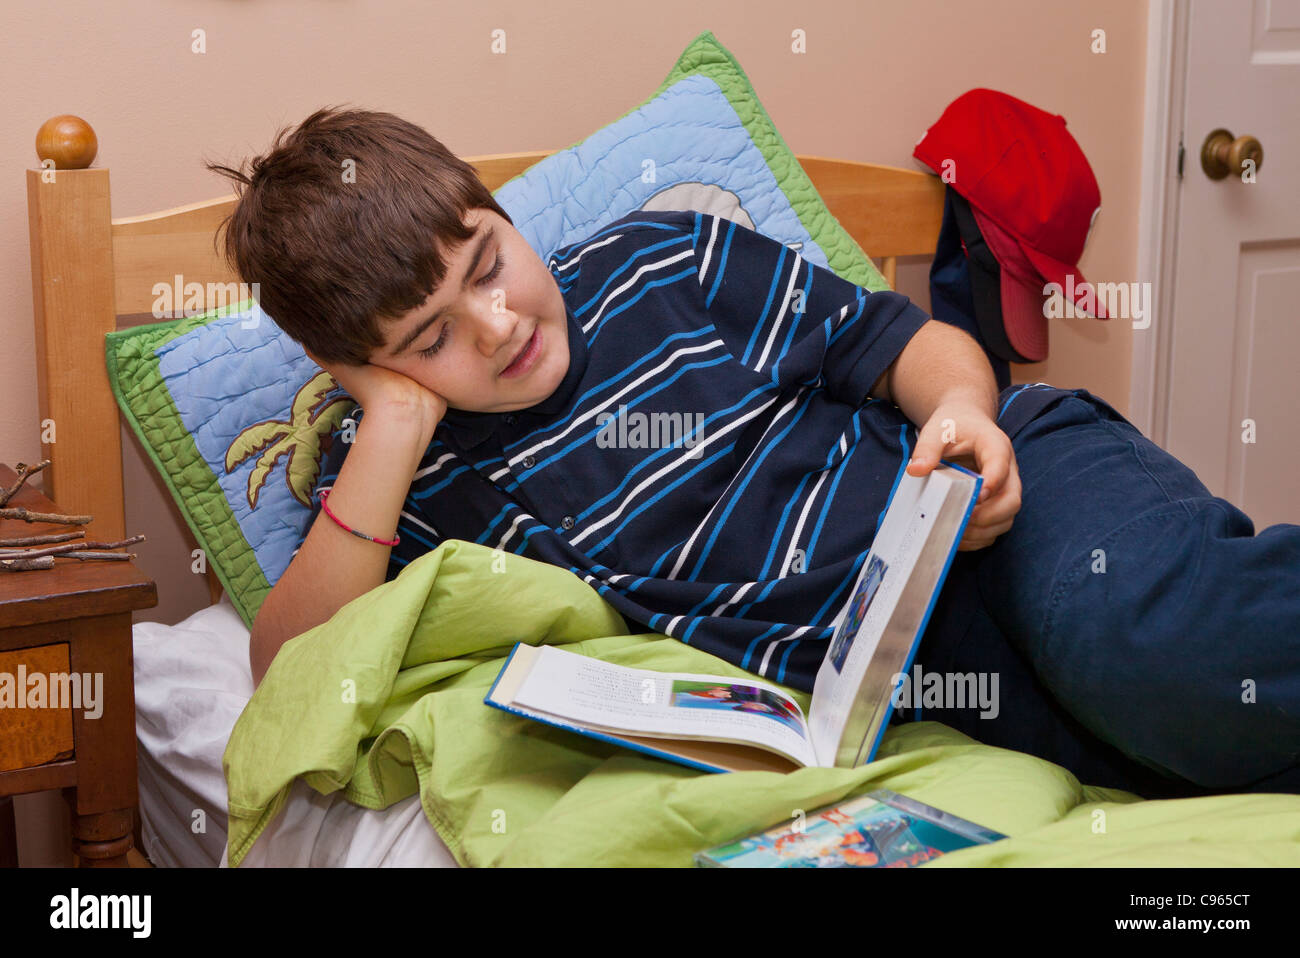 Autistic boy, age 13, reading on bed. - Stock Image